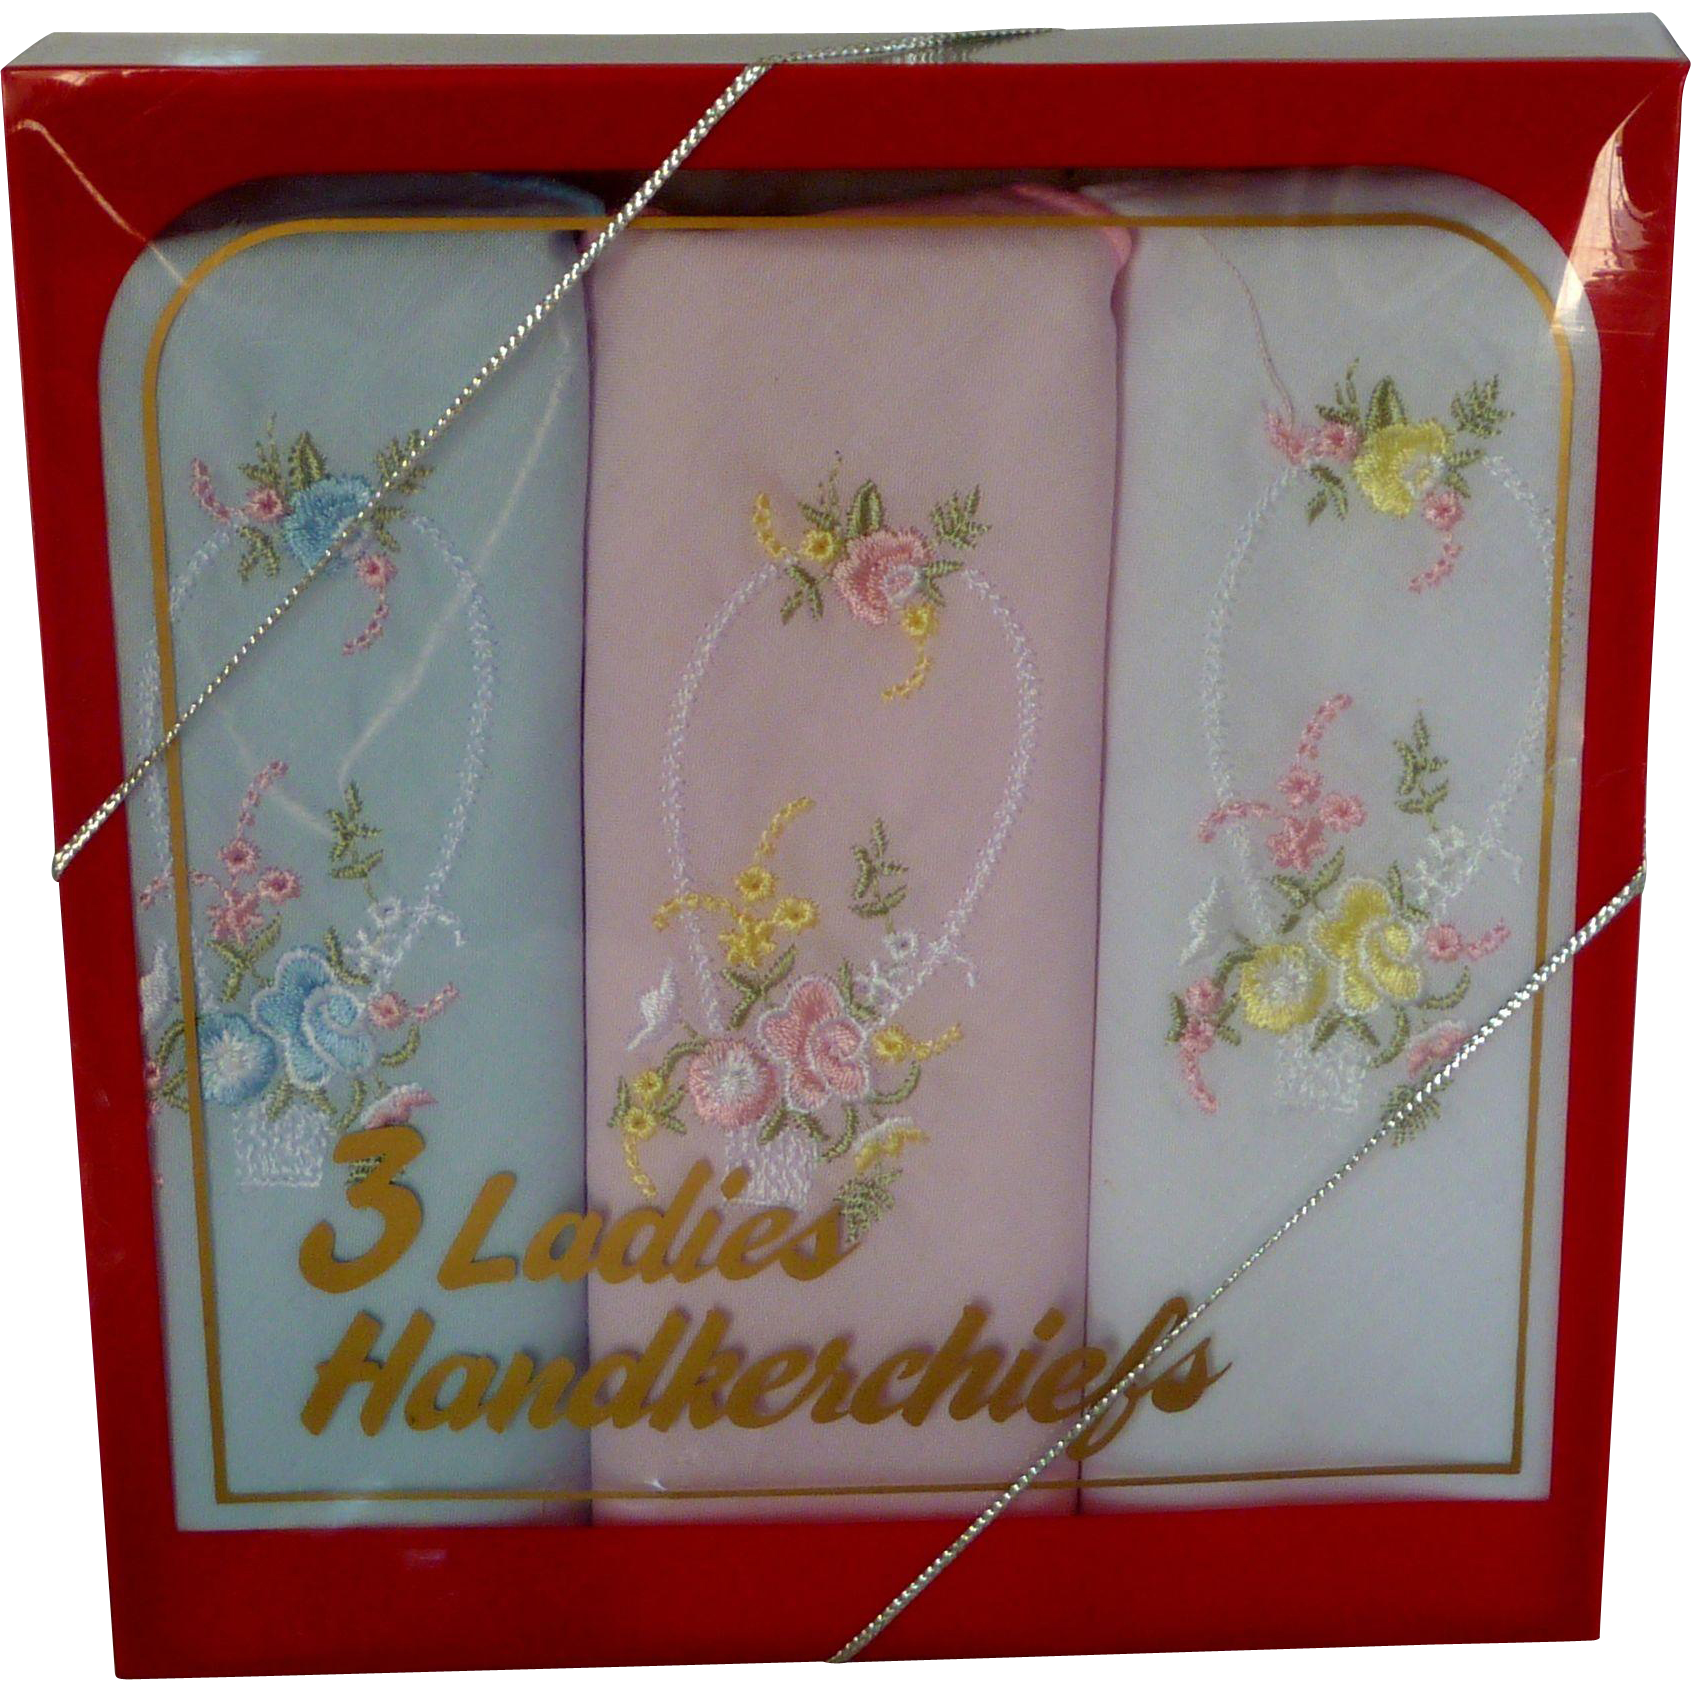 Three Pack Ladies Handkerchiefs 1991